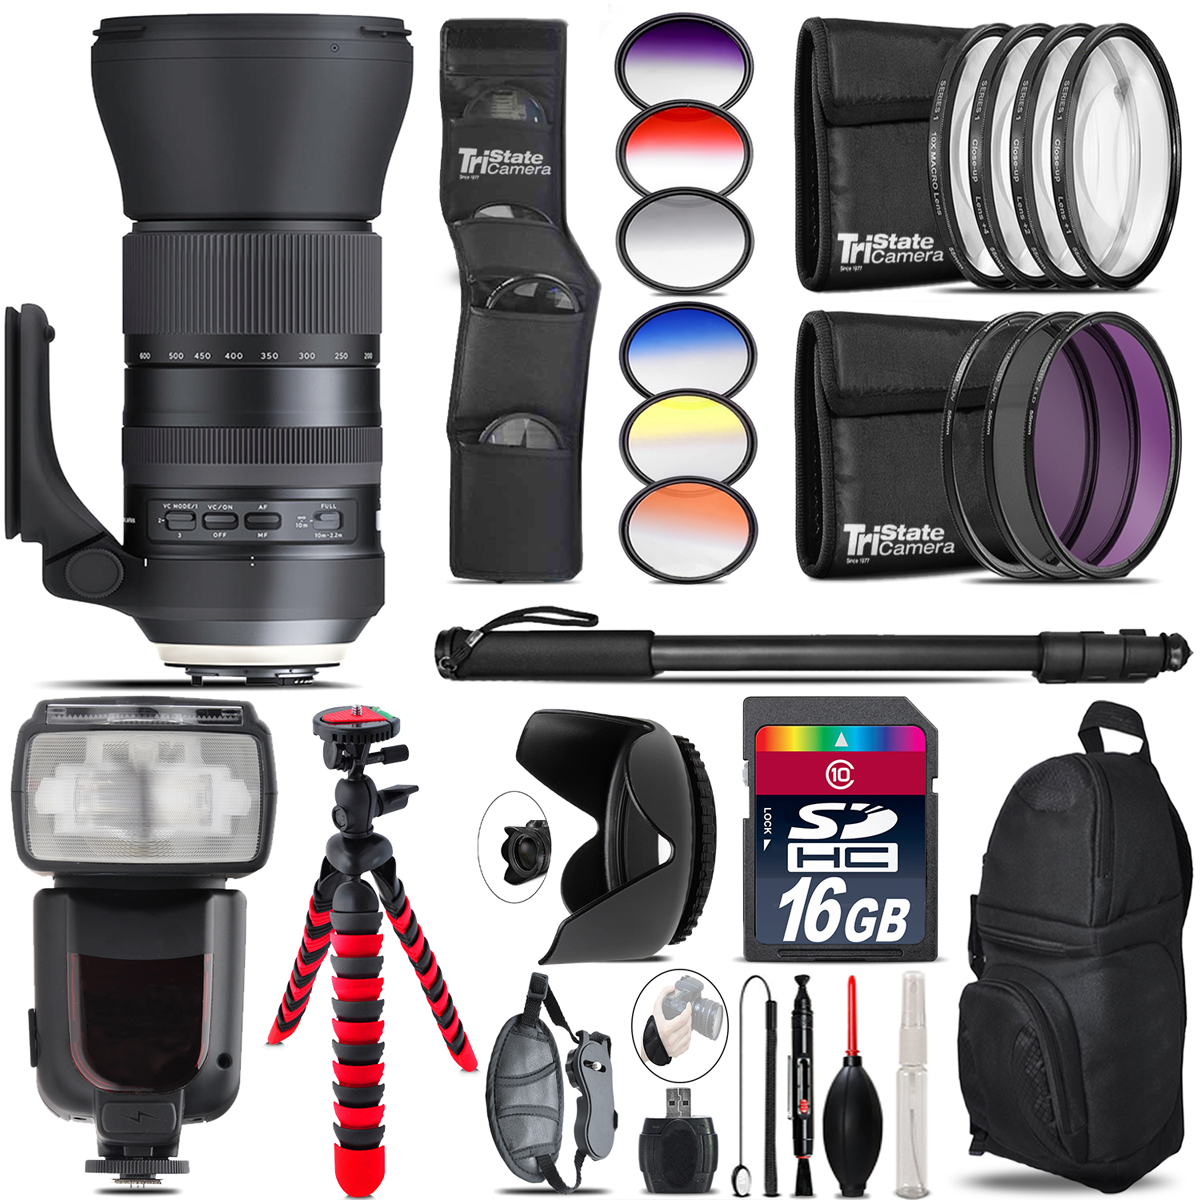 Tamron 150-600mm G2 for Canon + Pro Flash + Filter Kit - 16GB Accessory Kit *FREE SHIPPING*